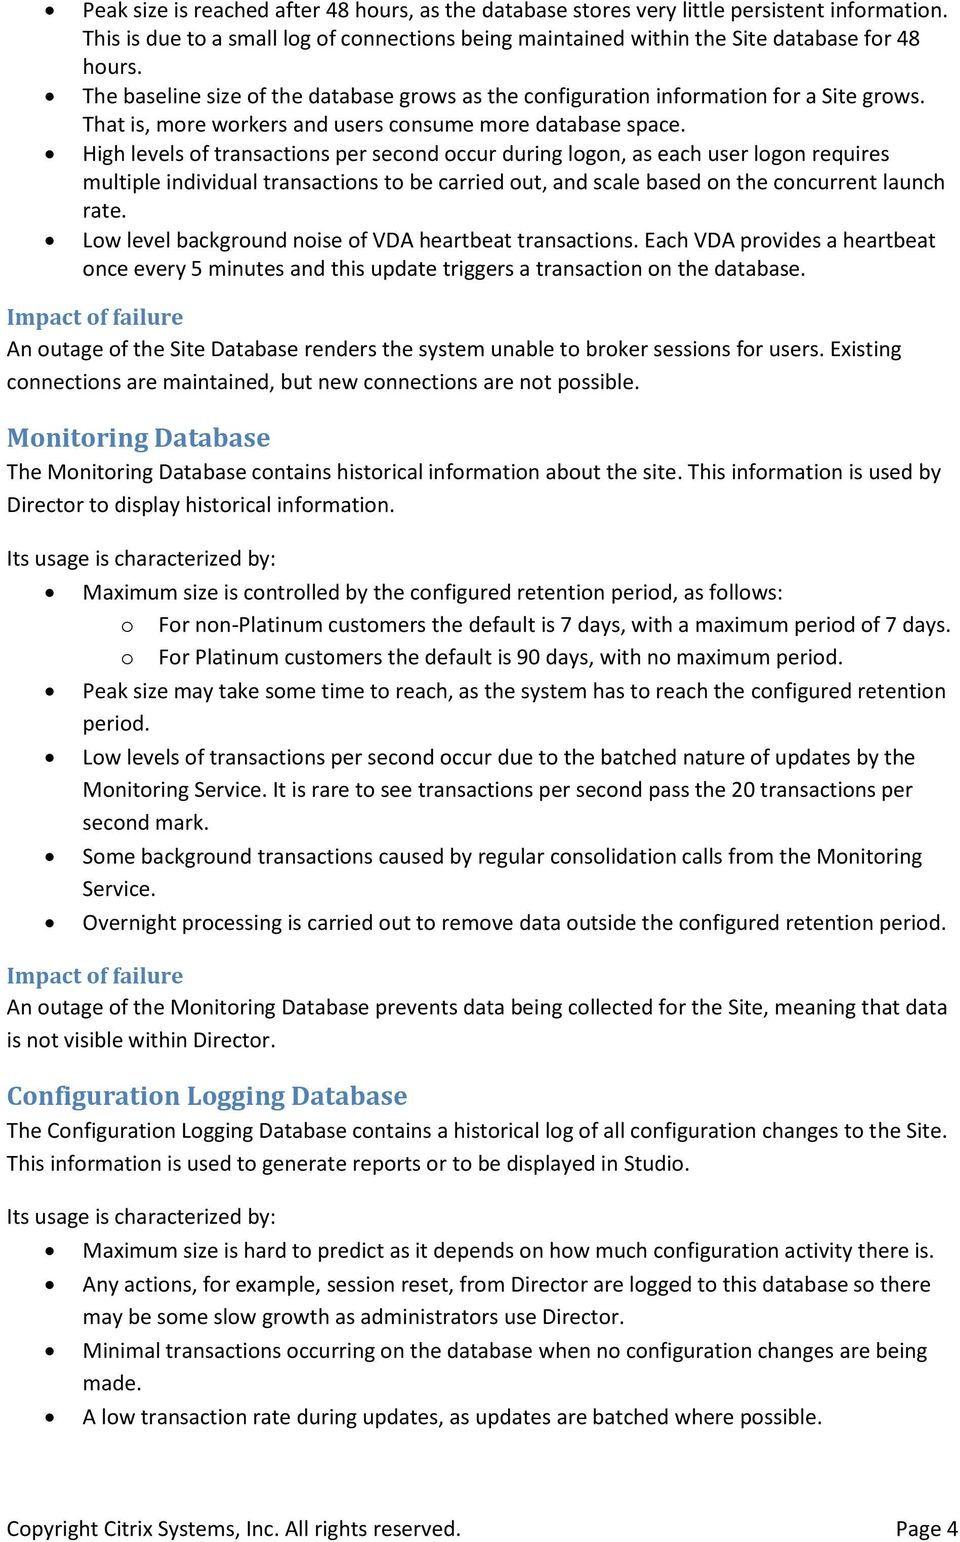 XenDesktop 7 Database Sizing - PDF